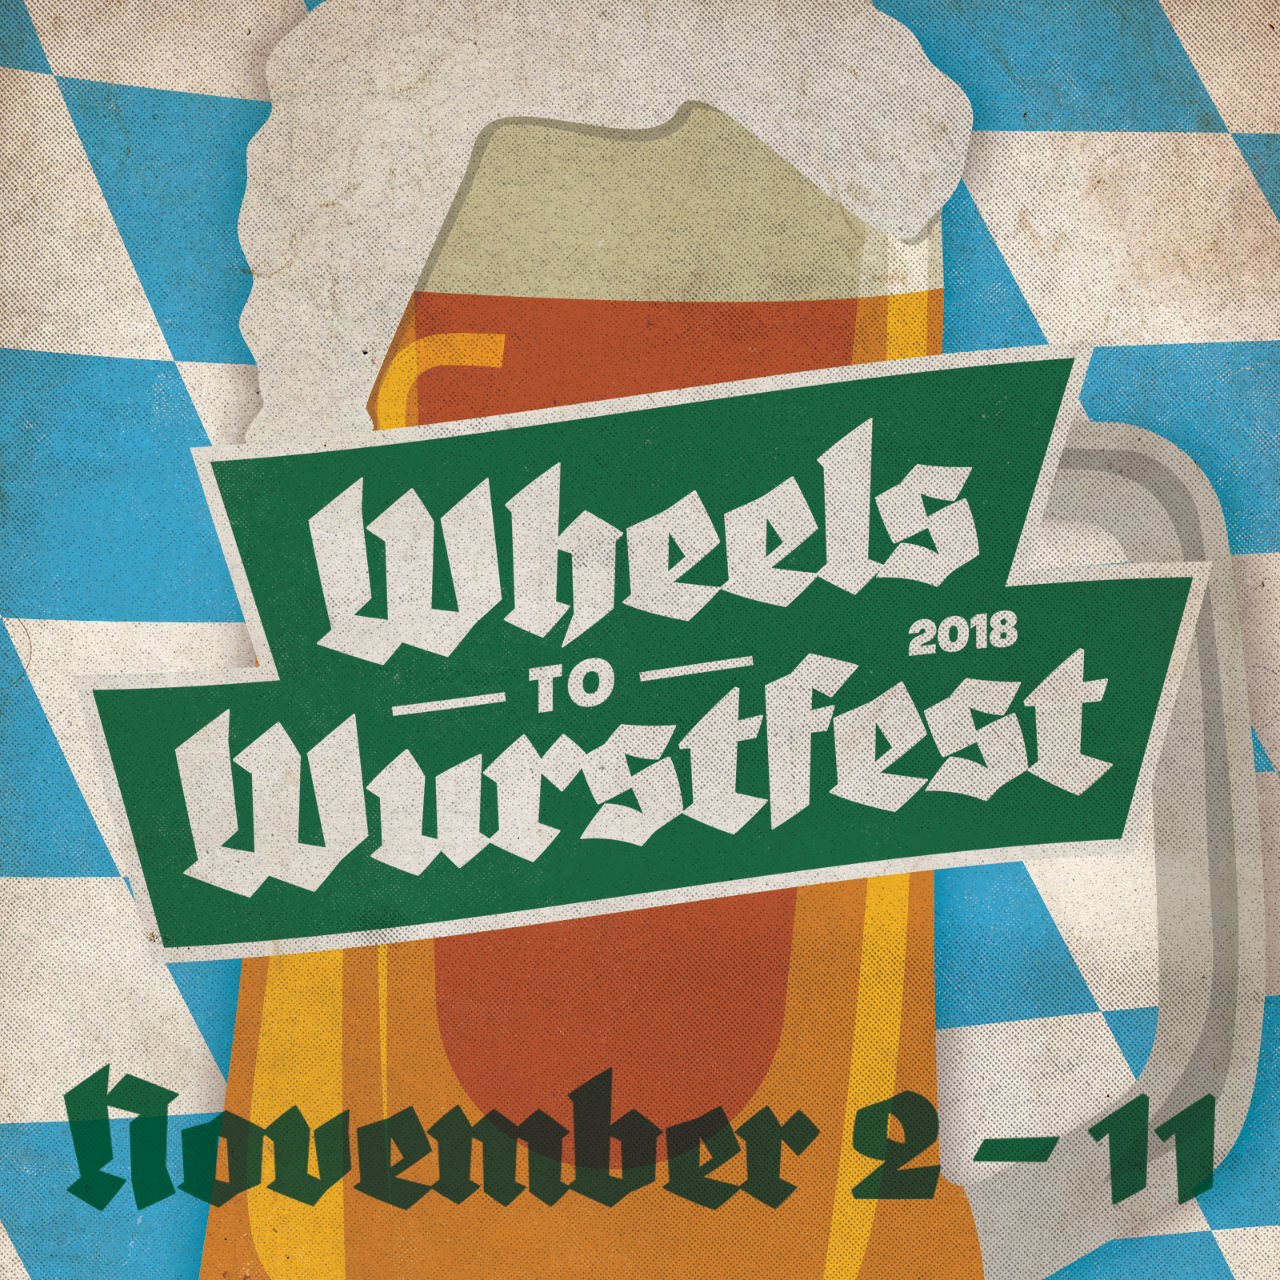 PRIVATE WHEELS TO WURSTFEST